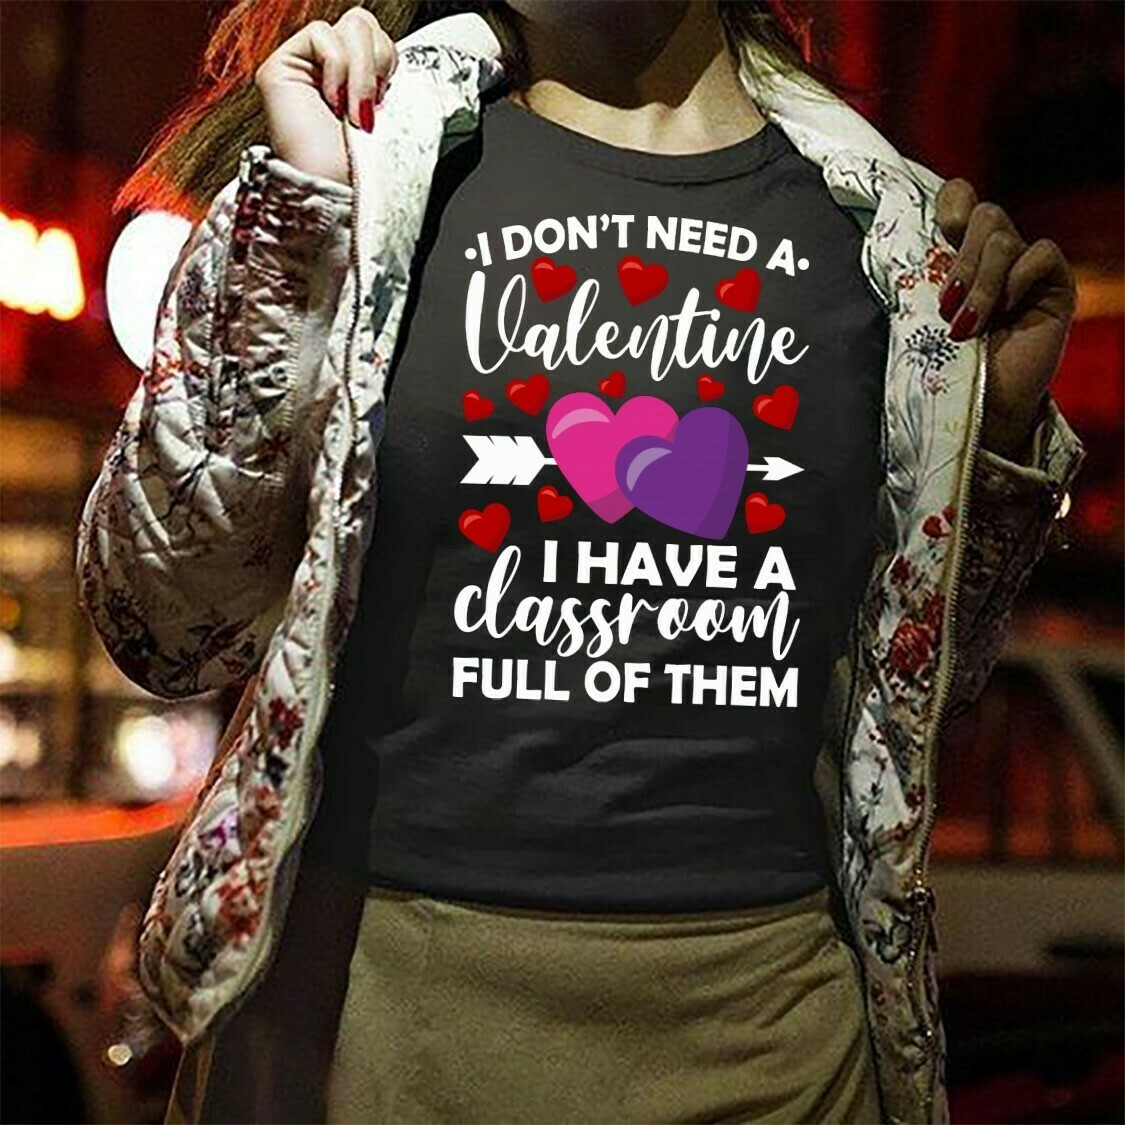 I Don't Need A Valentine I Have A Classroom Full Of Them Heart Funny Gift Teacher s T-Shirt Hoodie Sweatshirt Sweater Tee Kids Youth Gifts Jolly Family Gifts